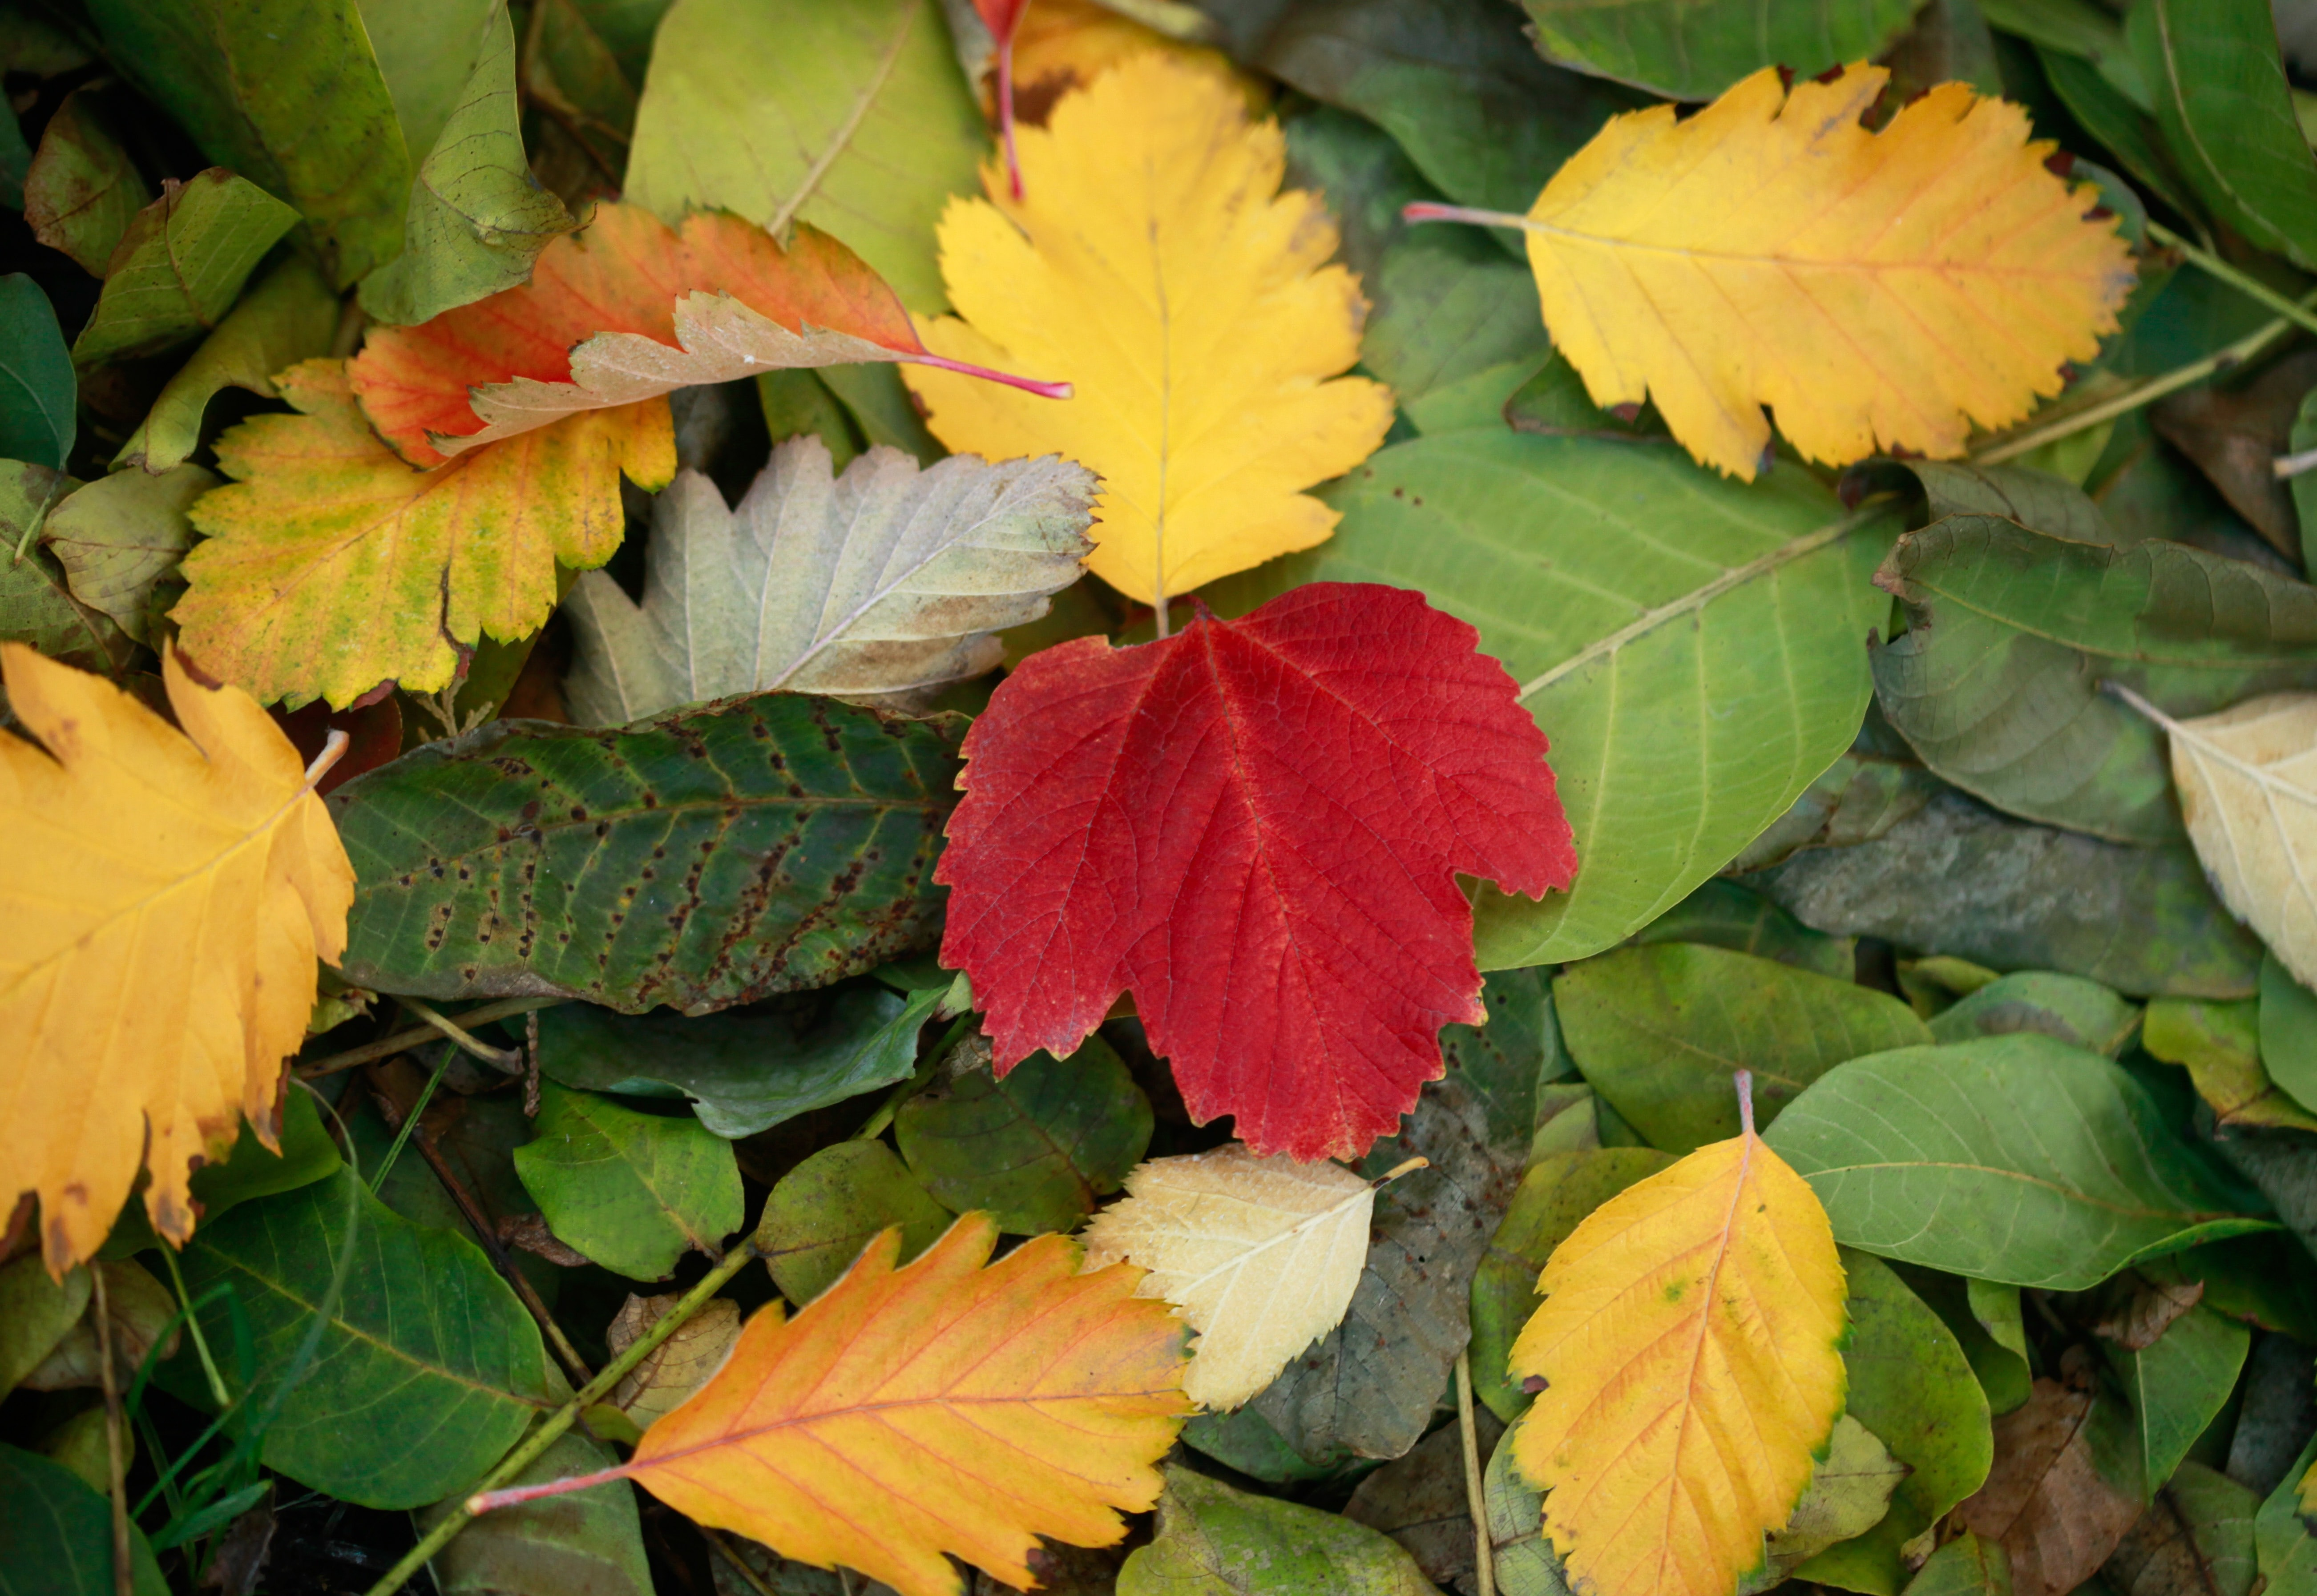 yellow, red, and green fallen leaves